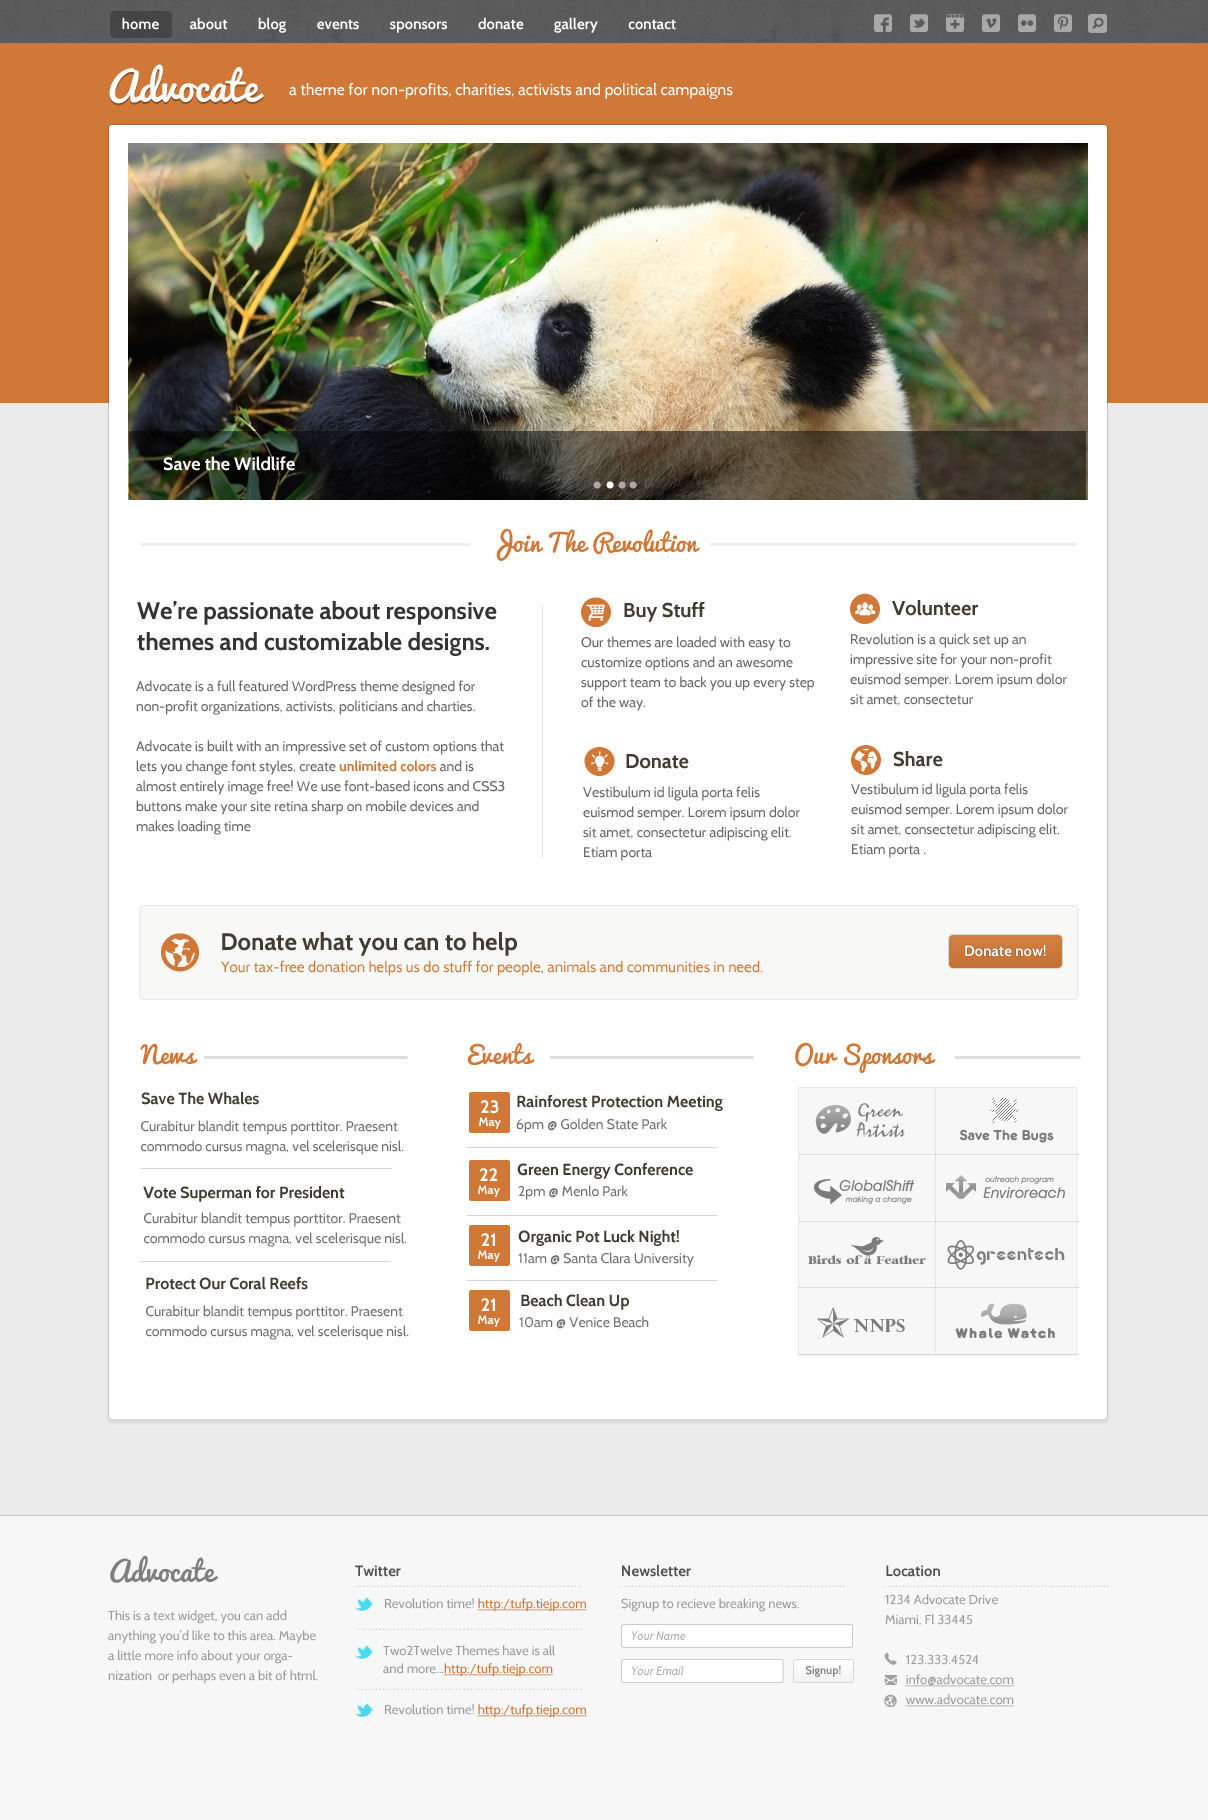 Advocate - A Nonprofit WordPress Theme - Homepage - The homepage features slider that support images and video along with a clean grid layout with areas to clearly display your events, news, and sponsors as well as clear call to action areas making it easy for user to donate to and learn more about your cause.